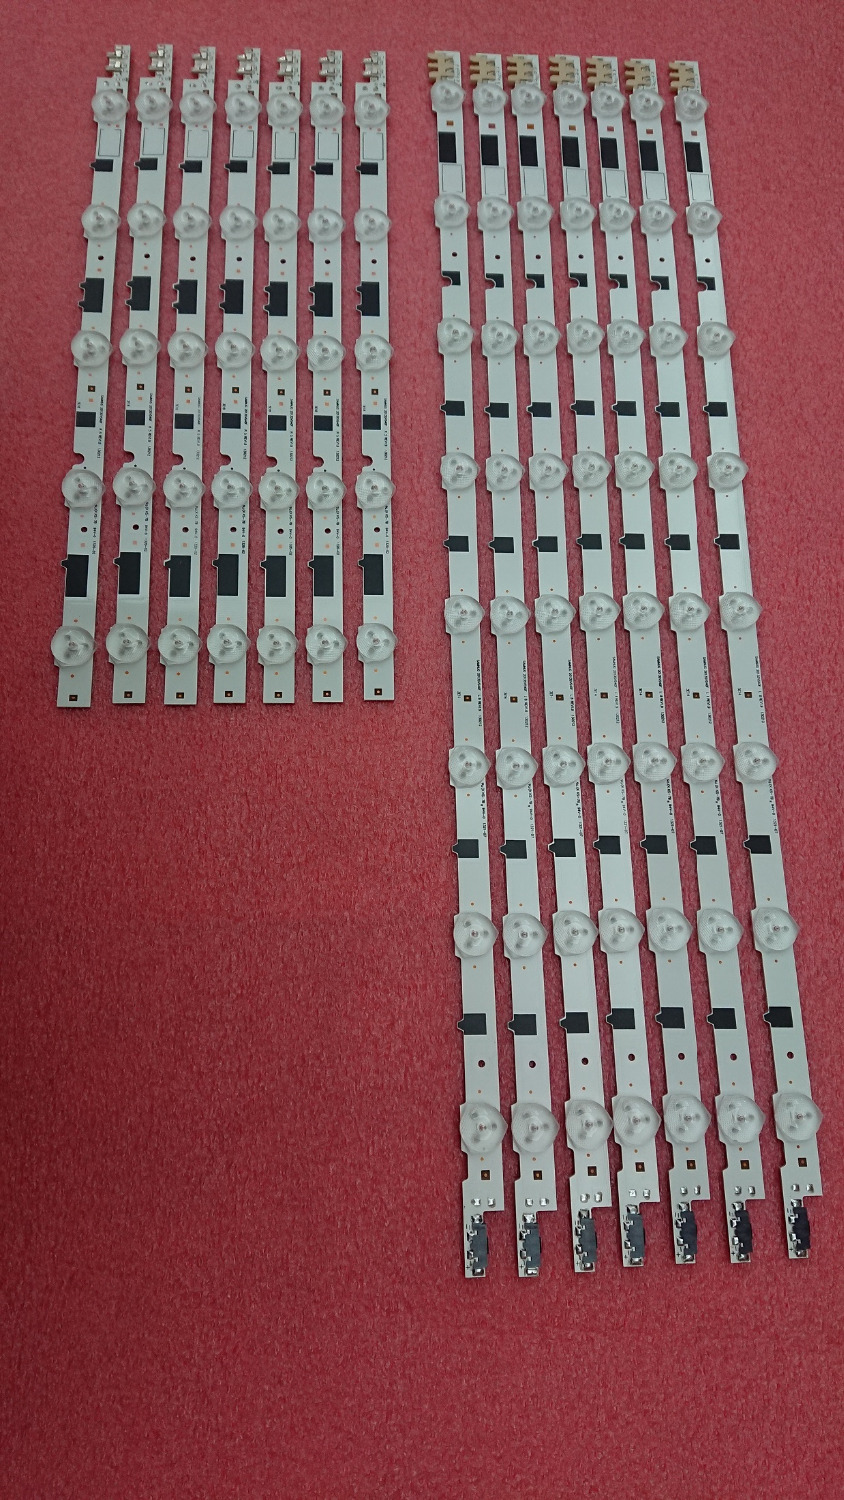 New Kit 14pcs 7 R 7 L LED backlight strip Replacement for samsung UE40F5000 BN96 25520A